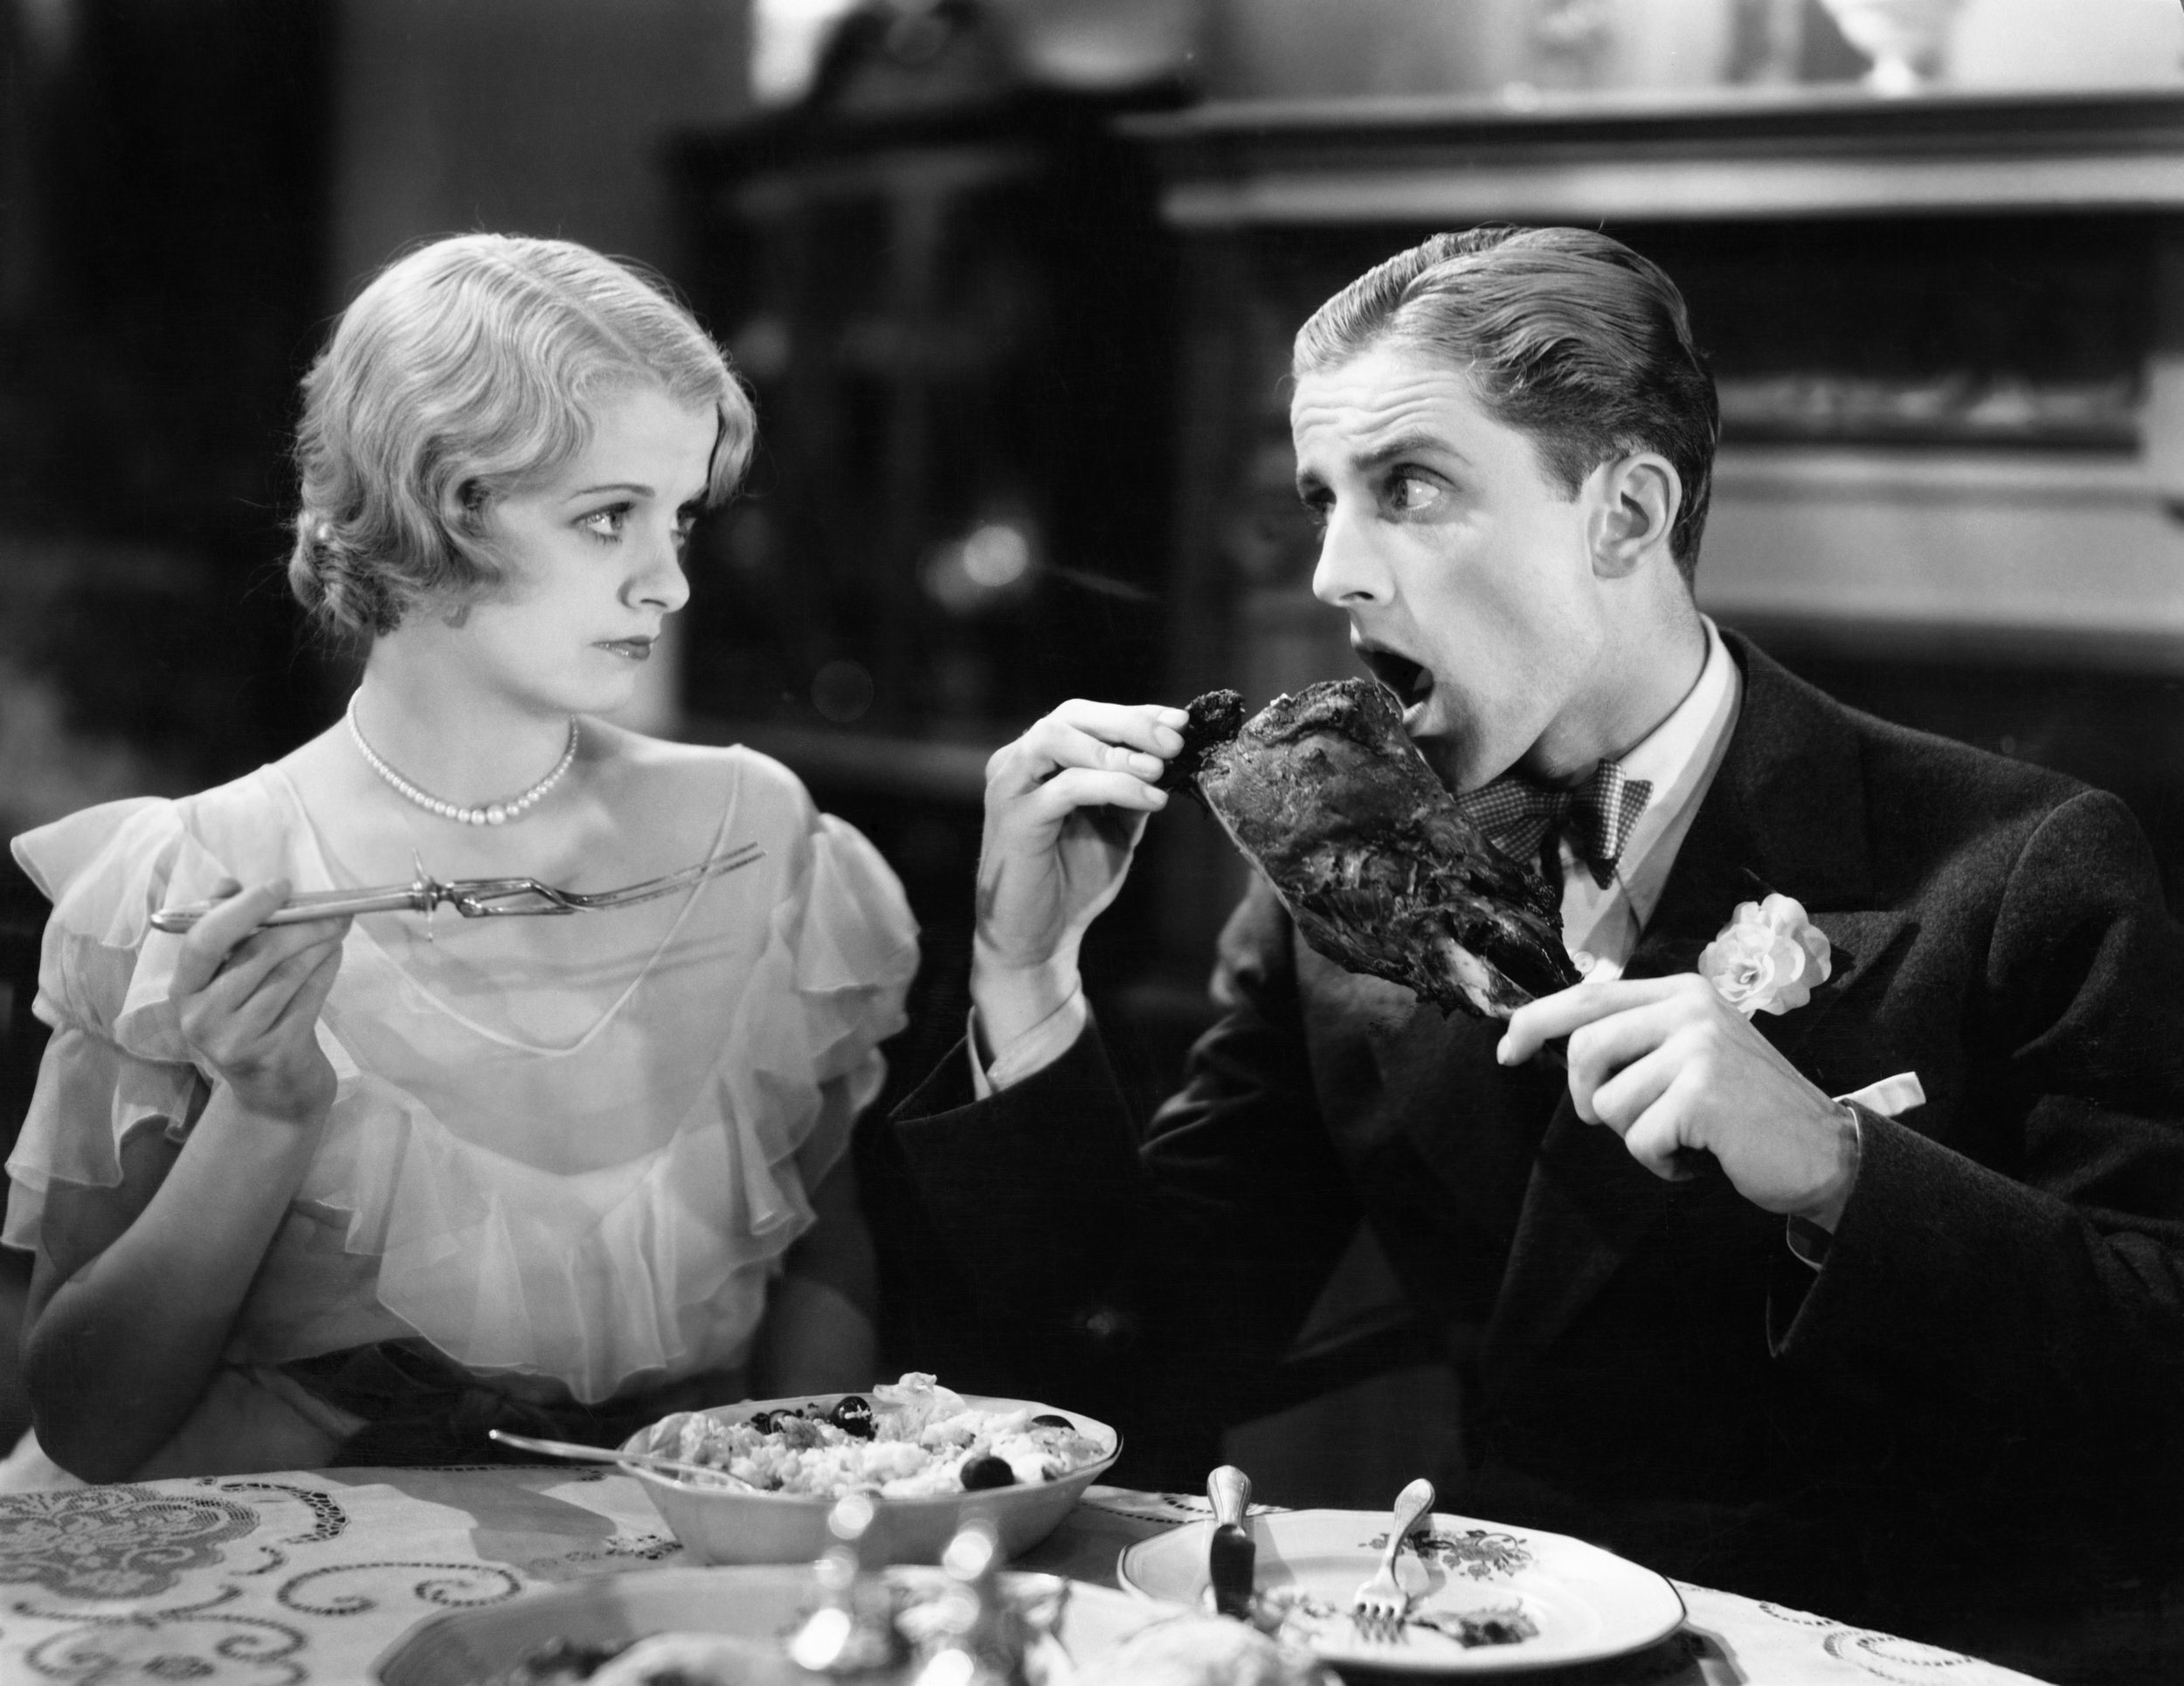 man eating with hands in front of woman